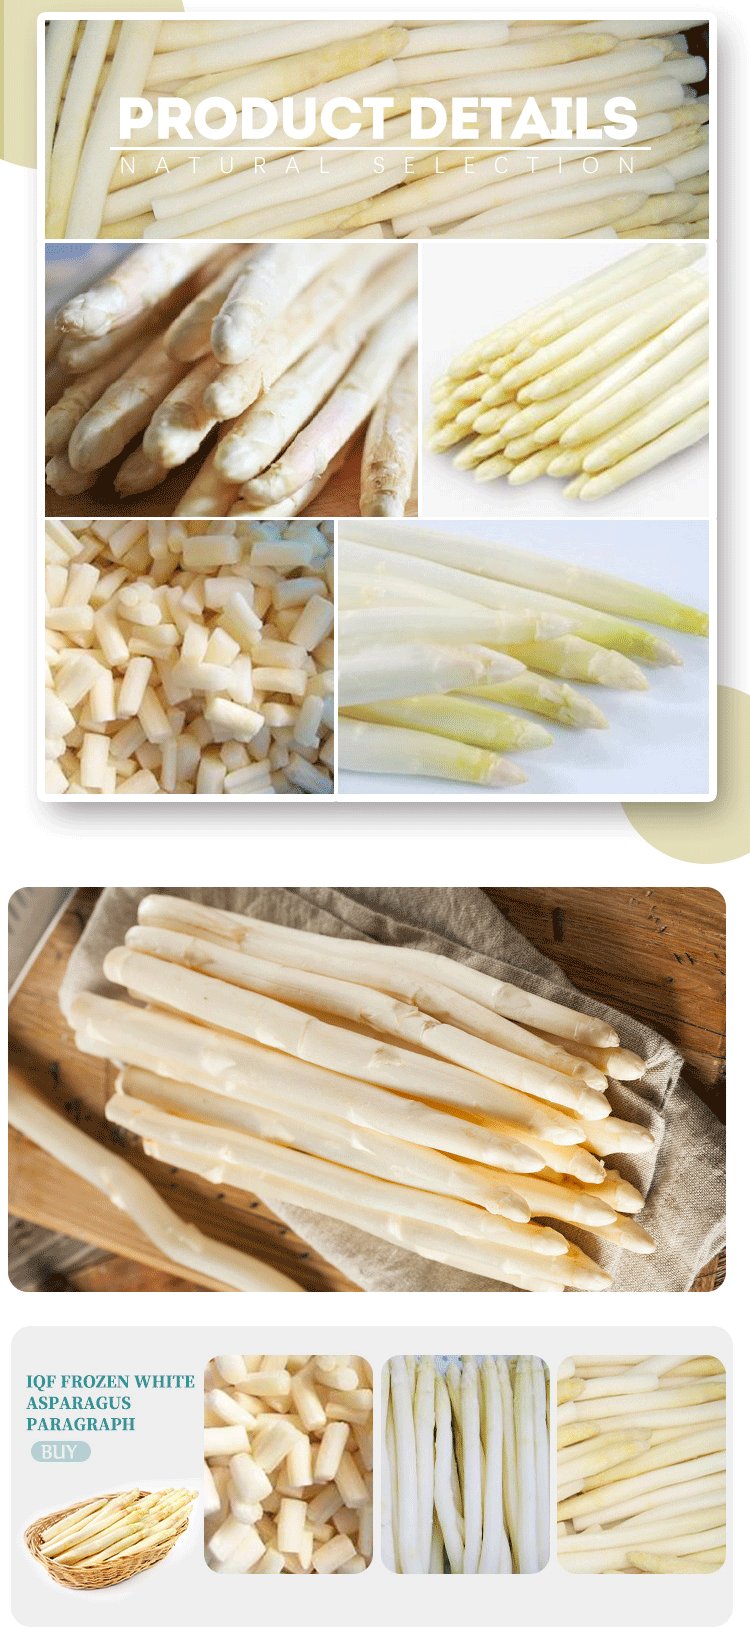 Iqf Frozen White Asparagus Paragraph Buy Frozen White Asparagus Paragraph Dress White Asparagus Product On Alibaba Com